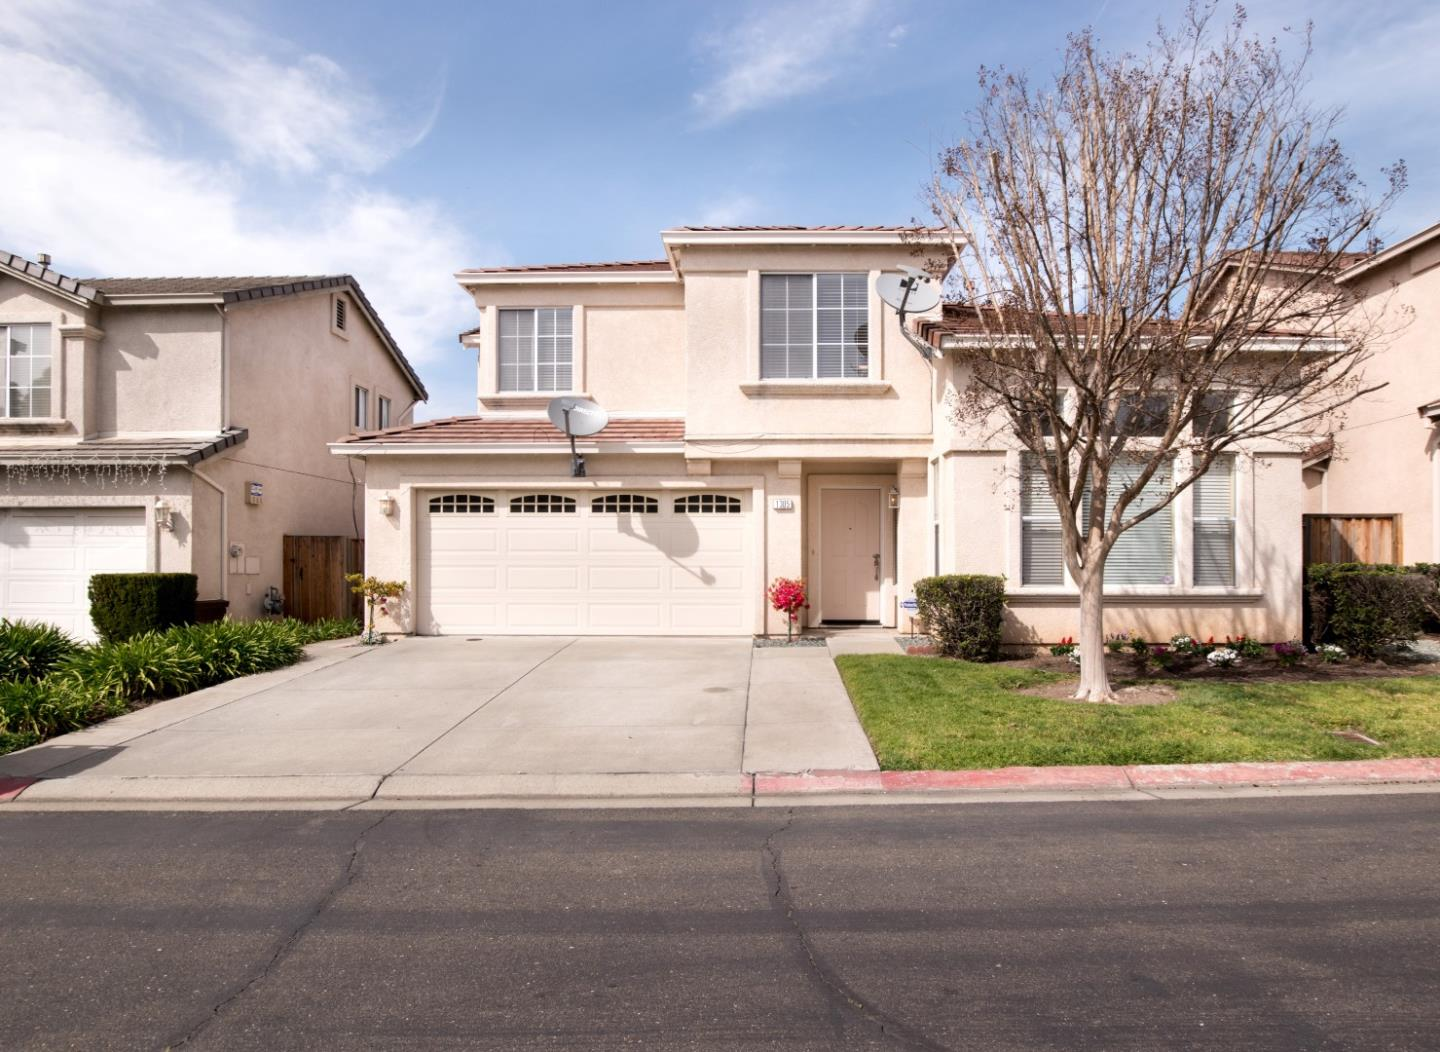 Single Family Home for Sale at 1305 French Court 1305 French Court Milpitas, California 95035 United States